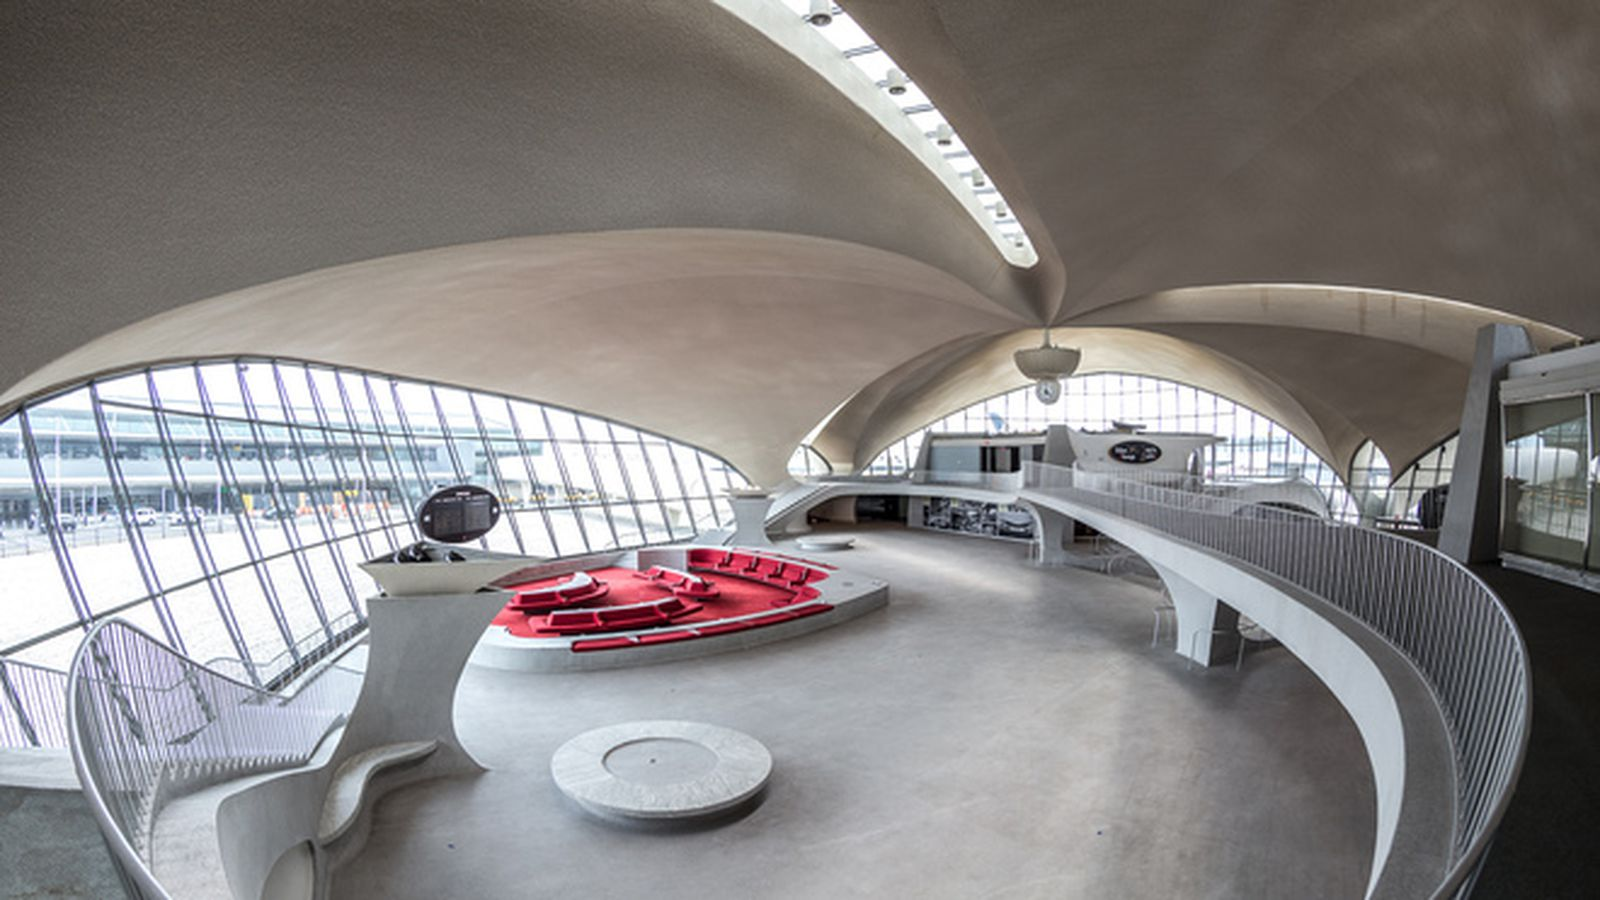 Twa Flight Center Hotel Is Officially On The Road To